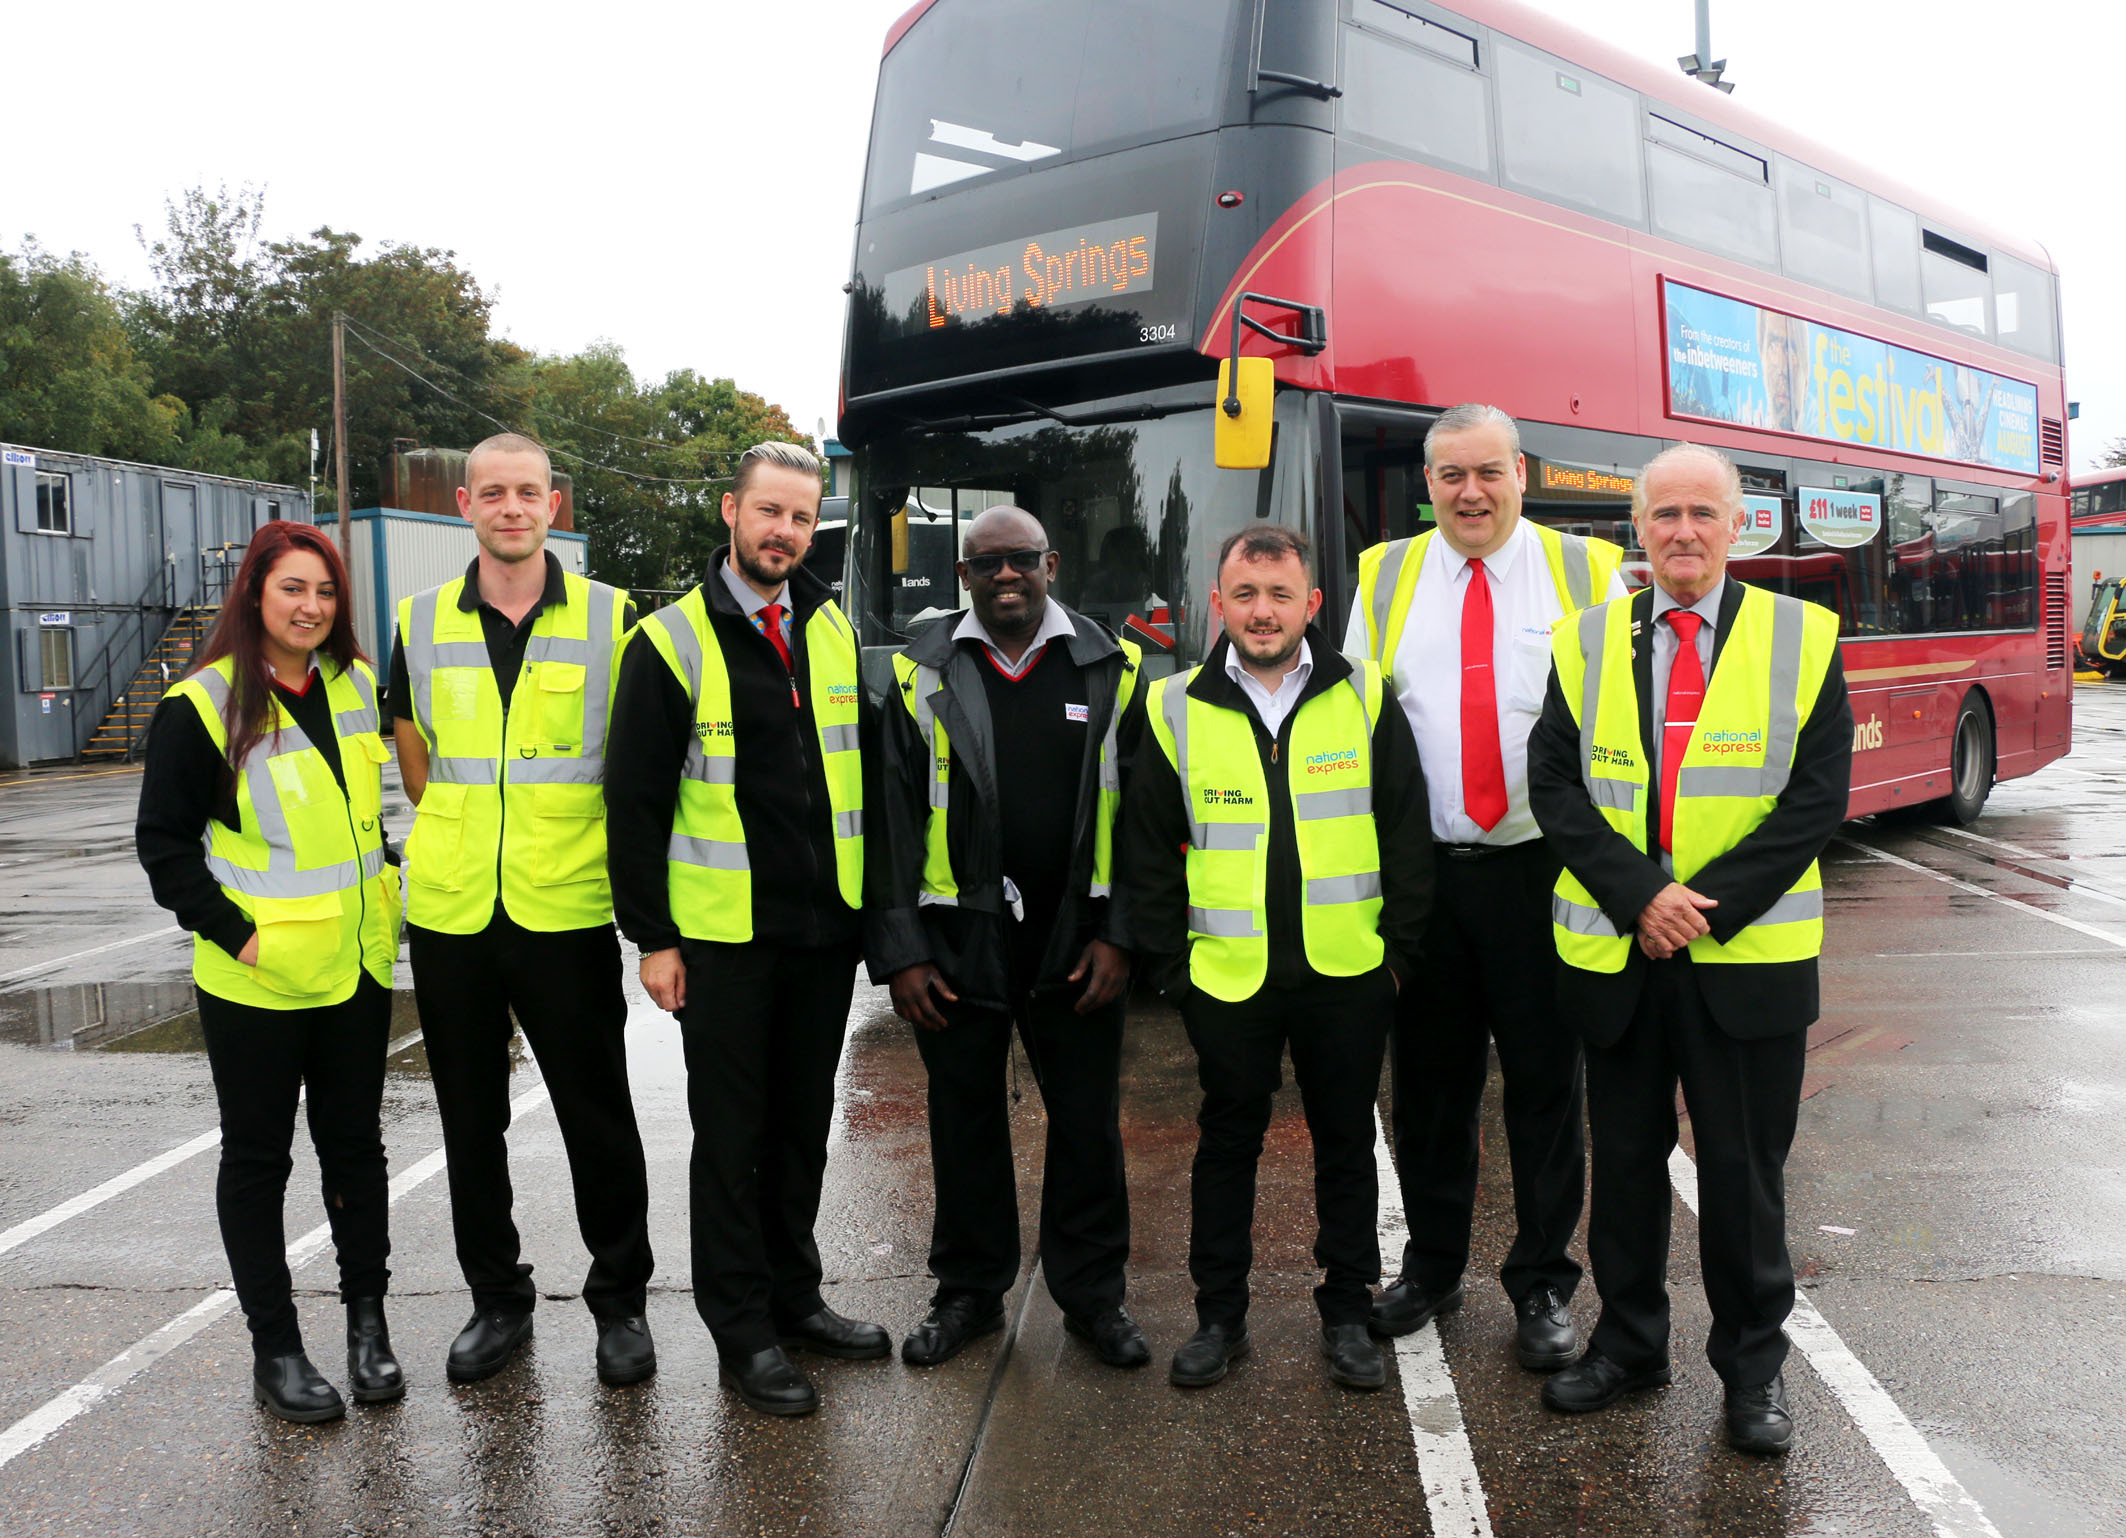 Dave Gerard, far right, with bus drivers and office staff